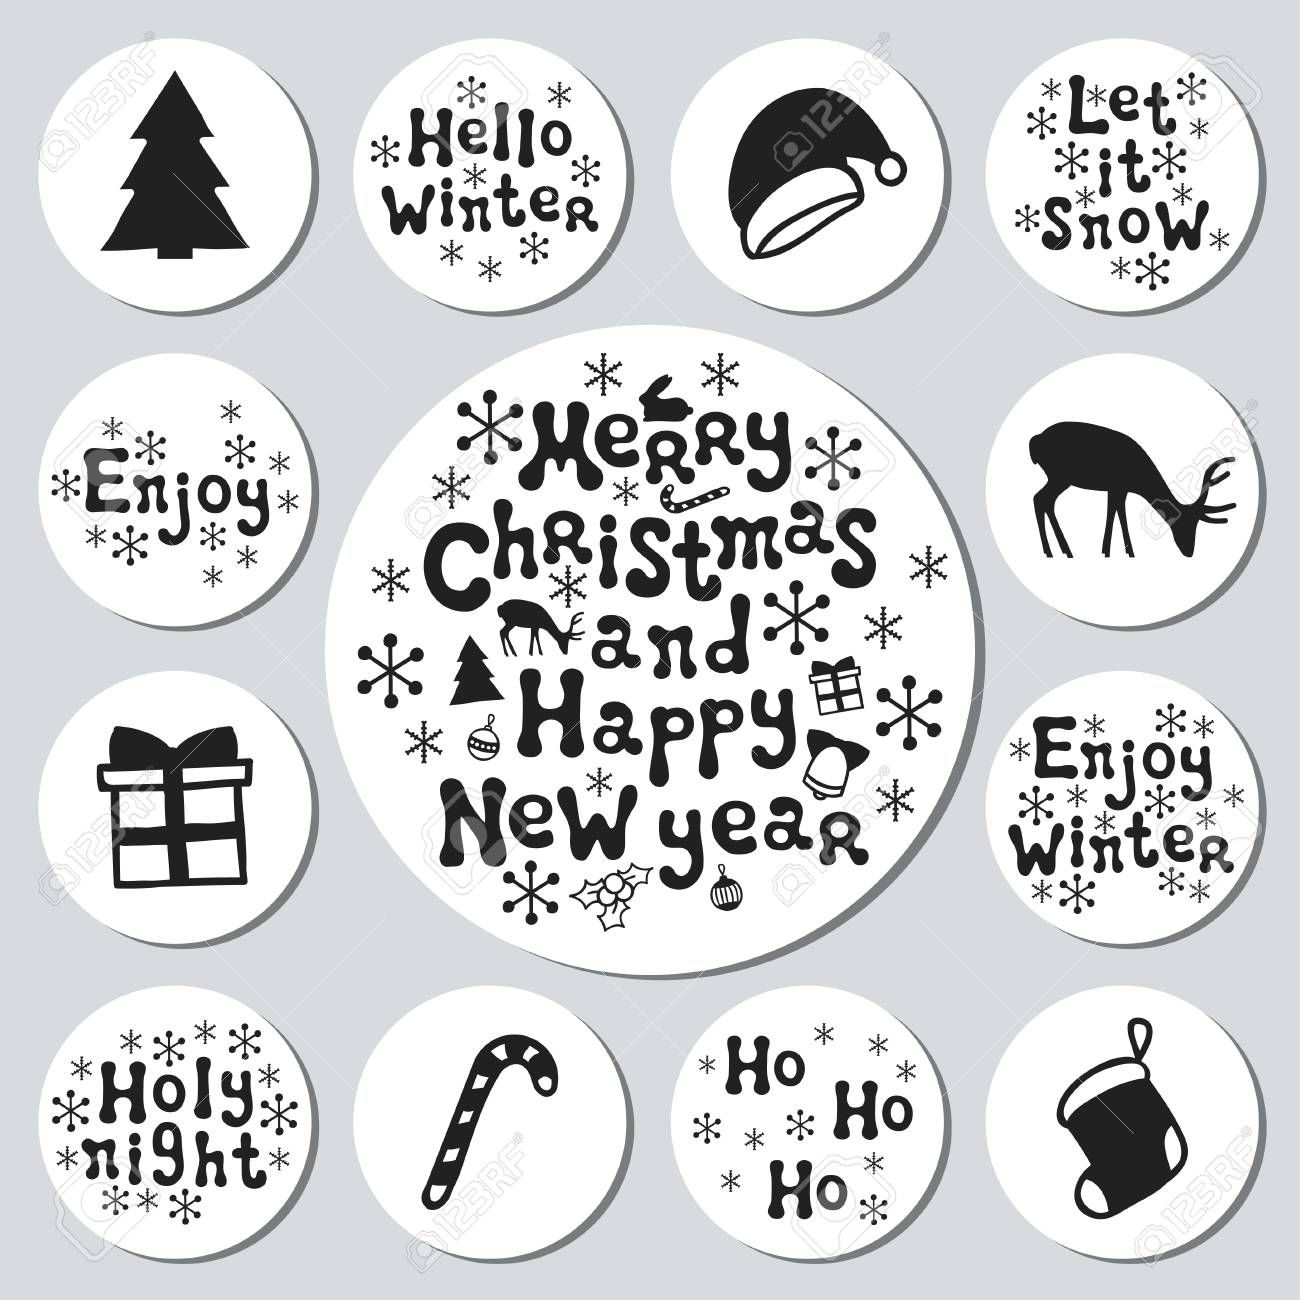 christmas new year gift round stickers labels xmas set hand drawn decorative element